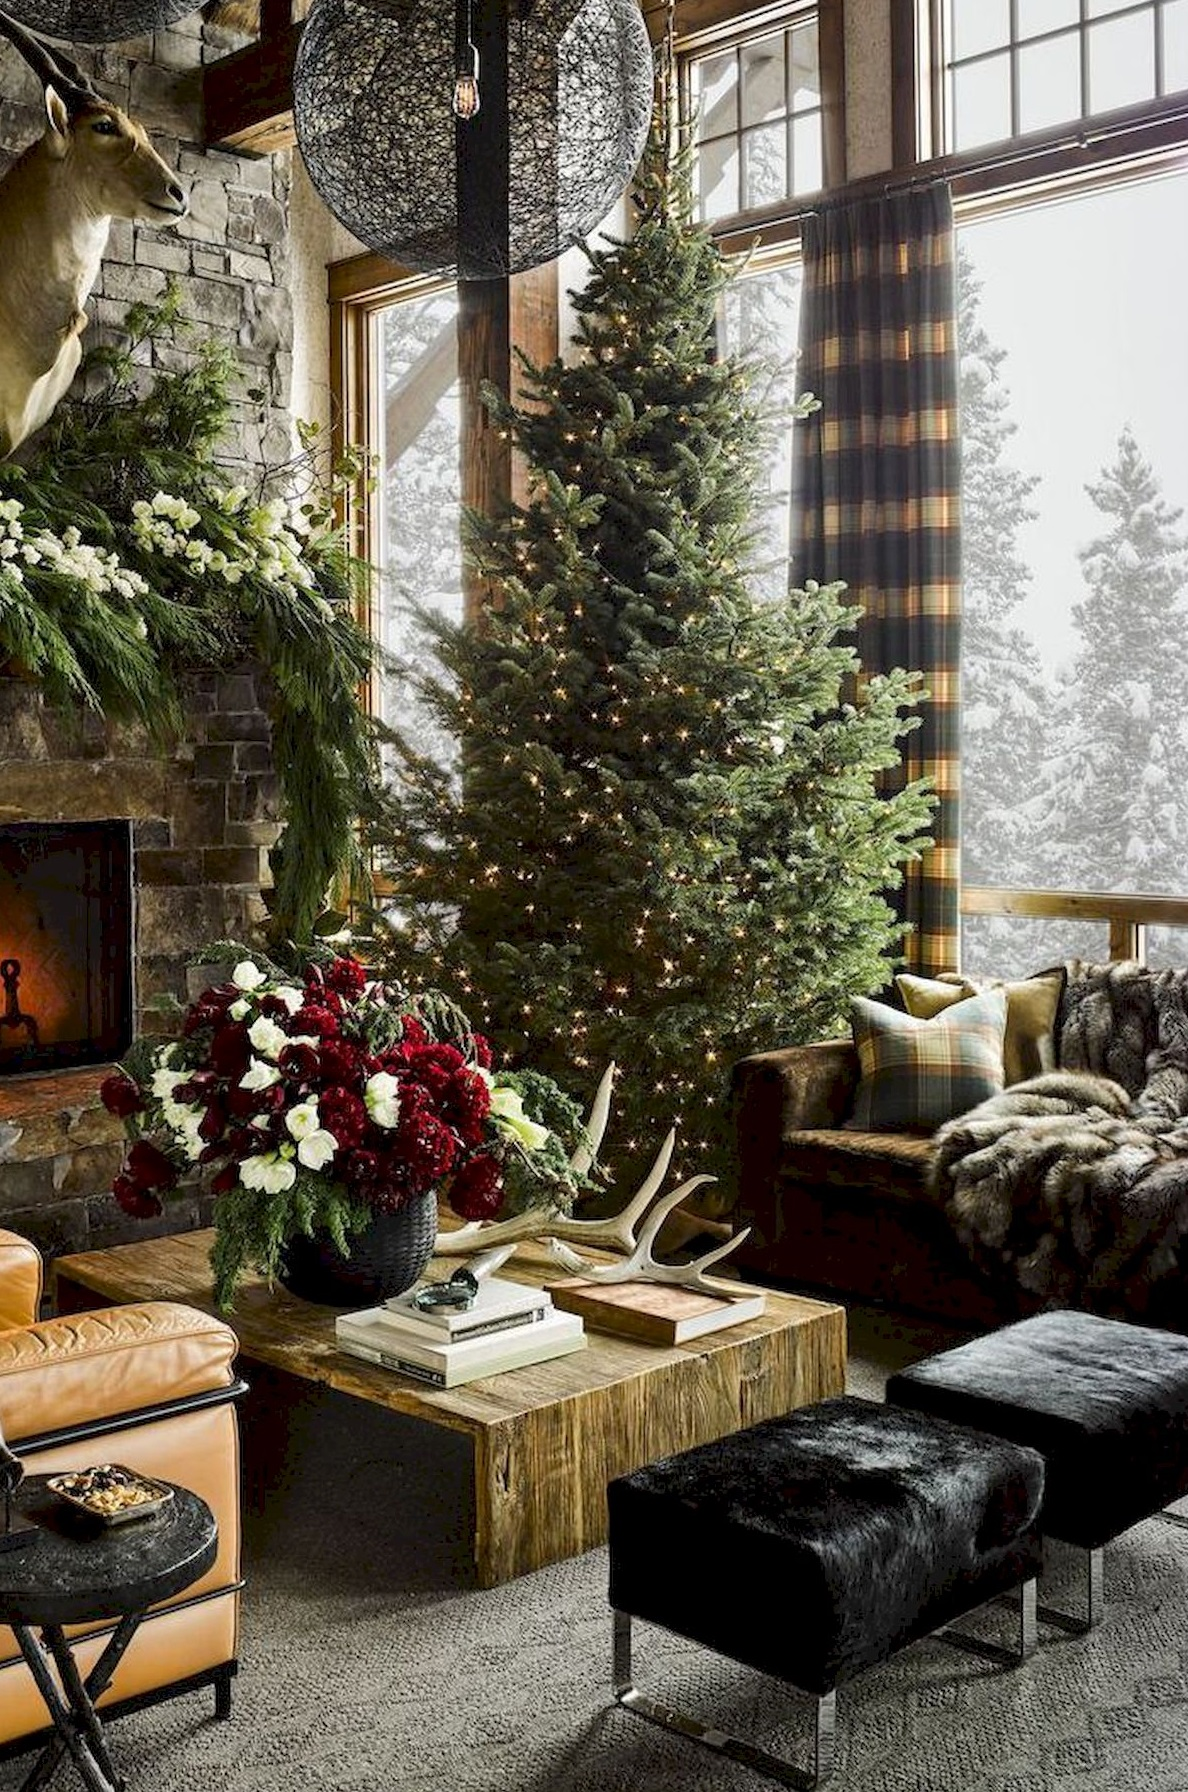 10 Ways to Decorate Your Christmas Tree - Christmas Tree Just Lights